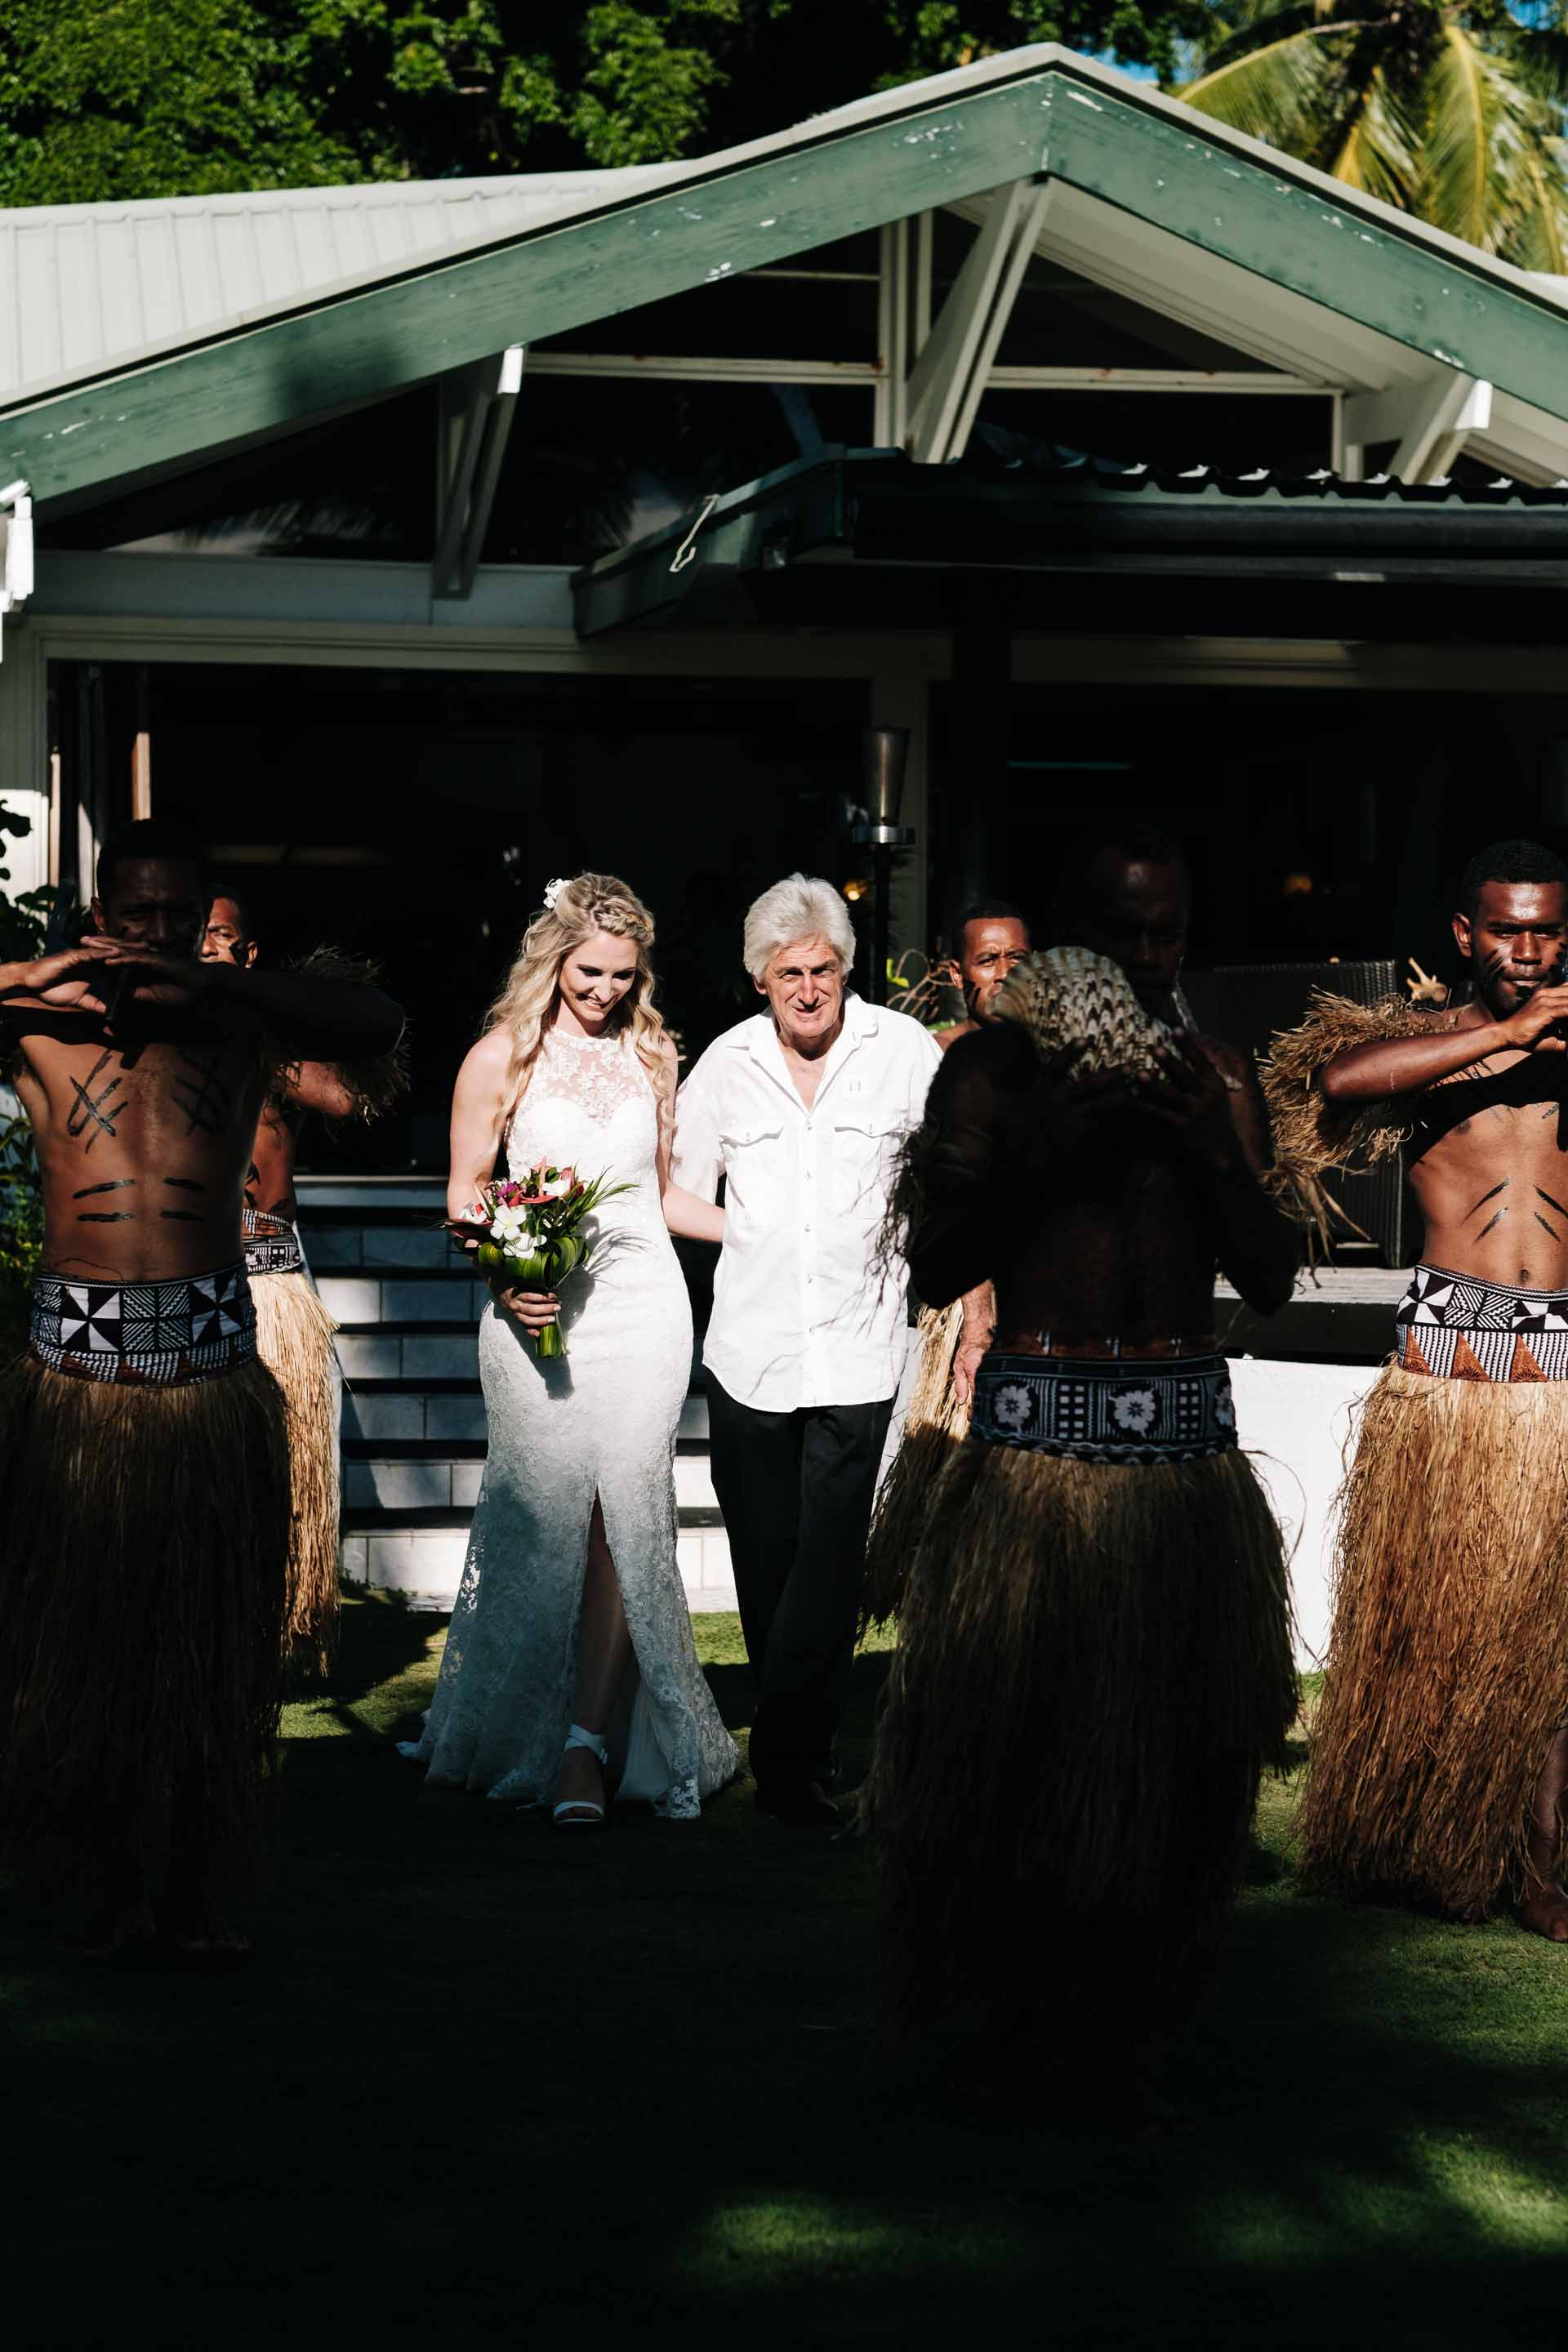 the bride and her father walking down the aisle escorted by Fijian warriors to the wedding arch